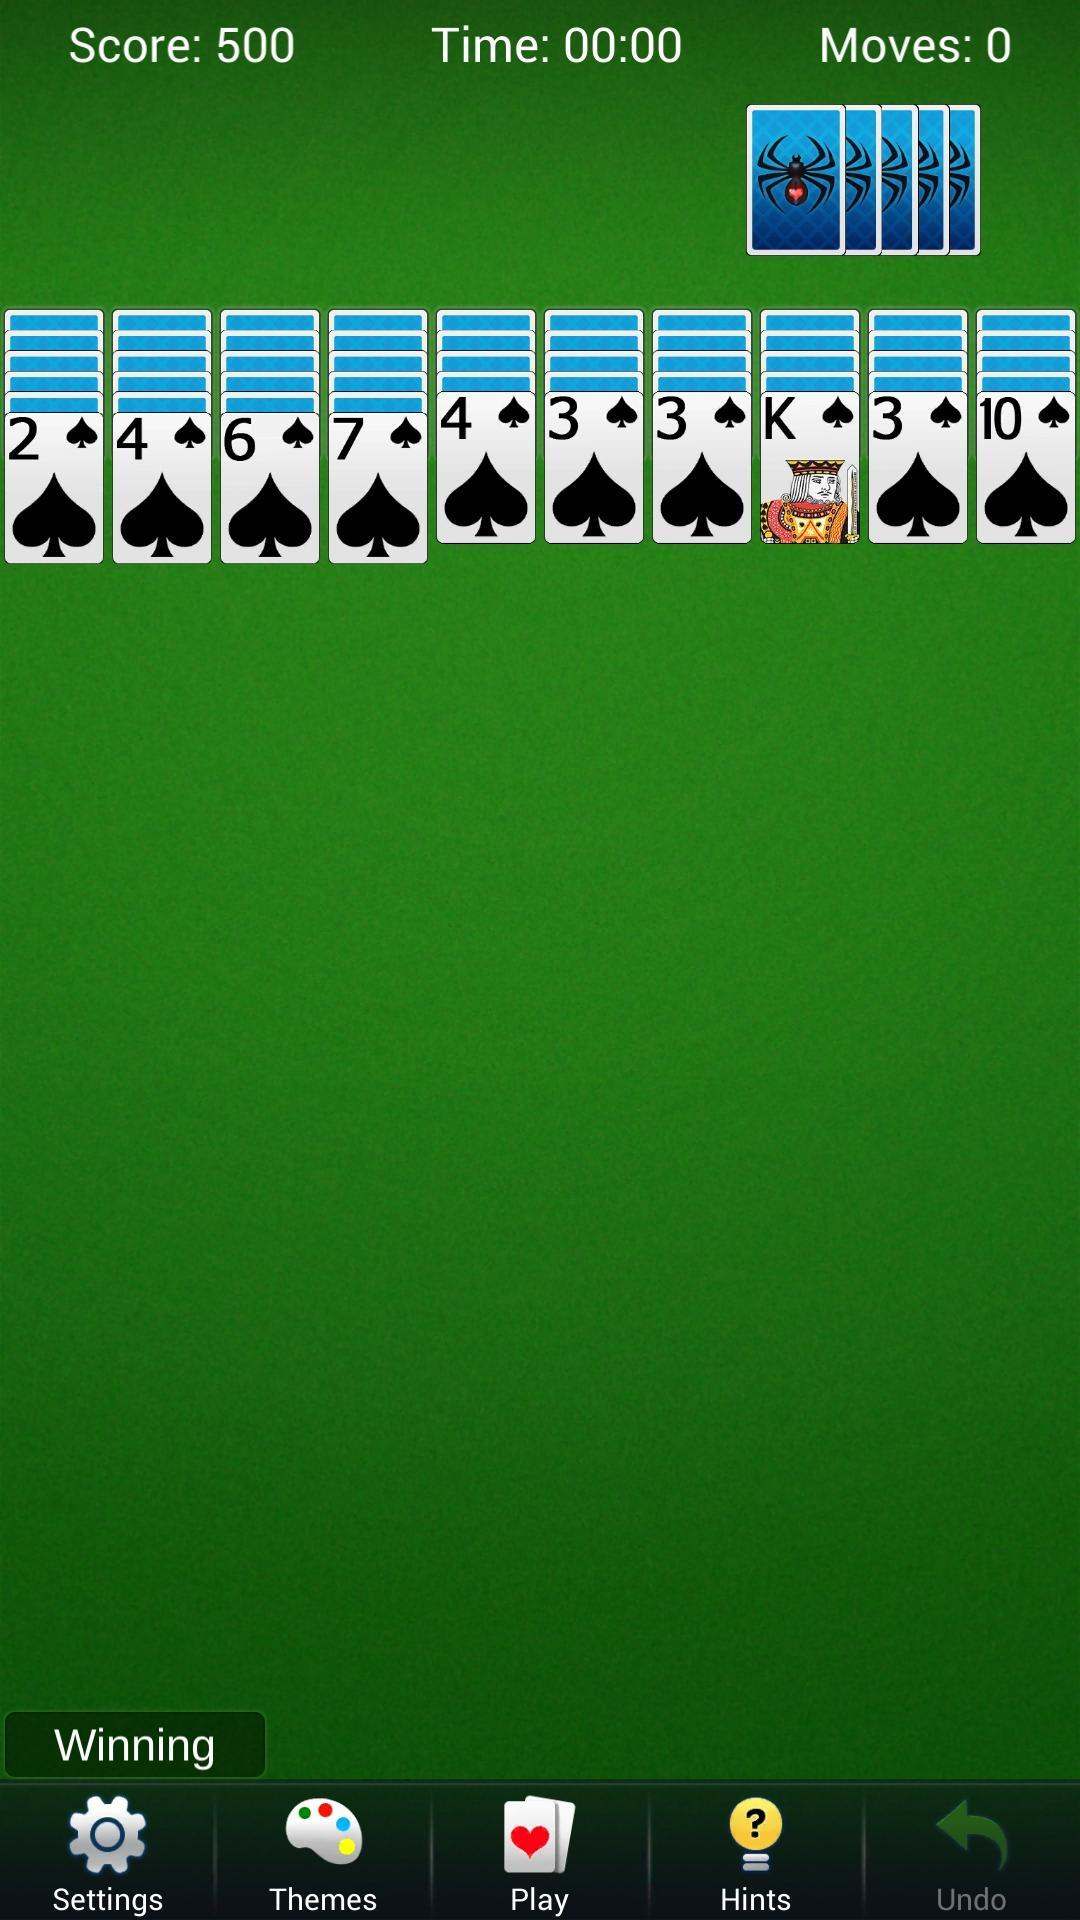 Spider Solitaire - Best Classic Card Games 1.6 Screenshot 4